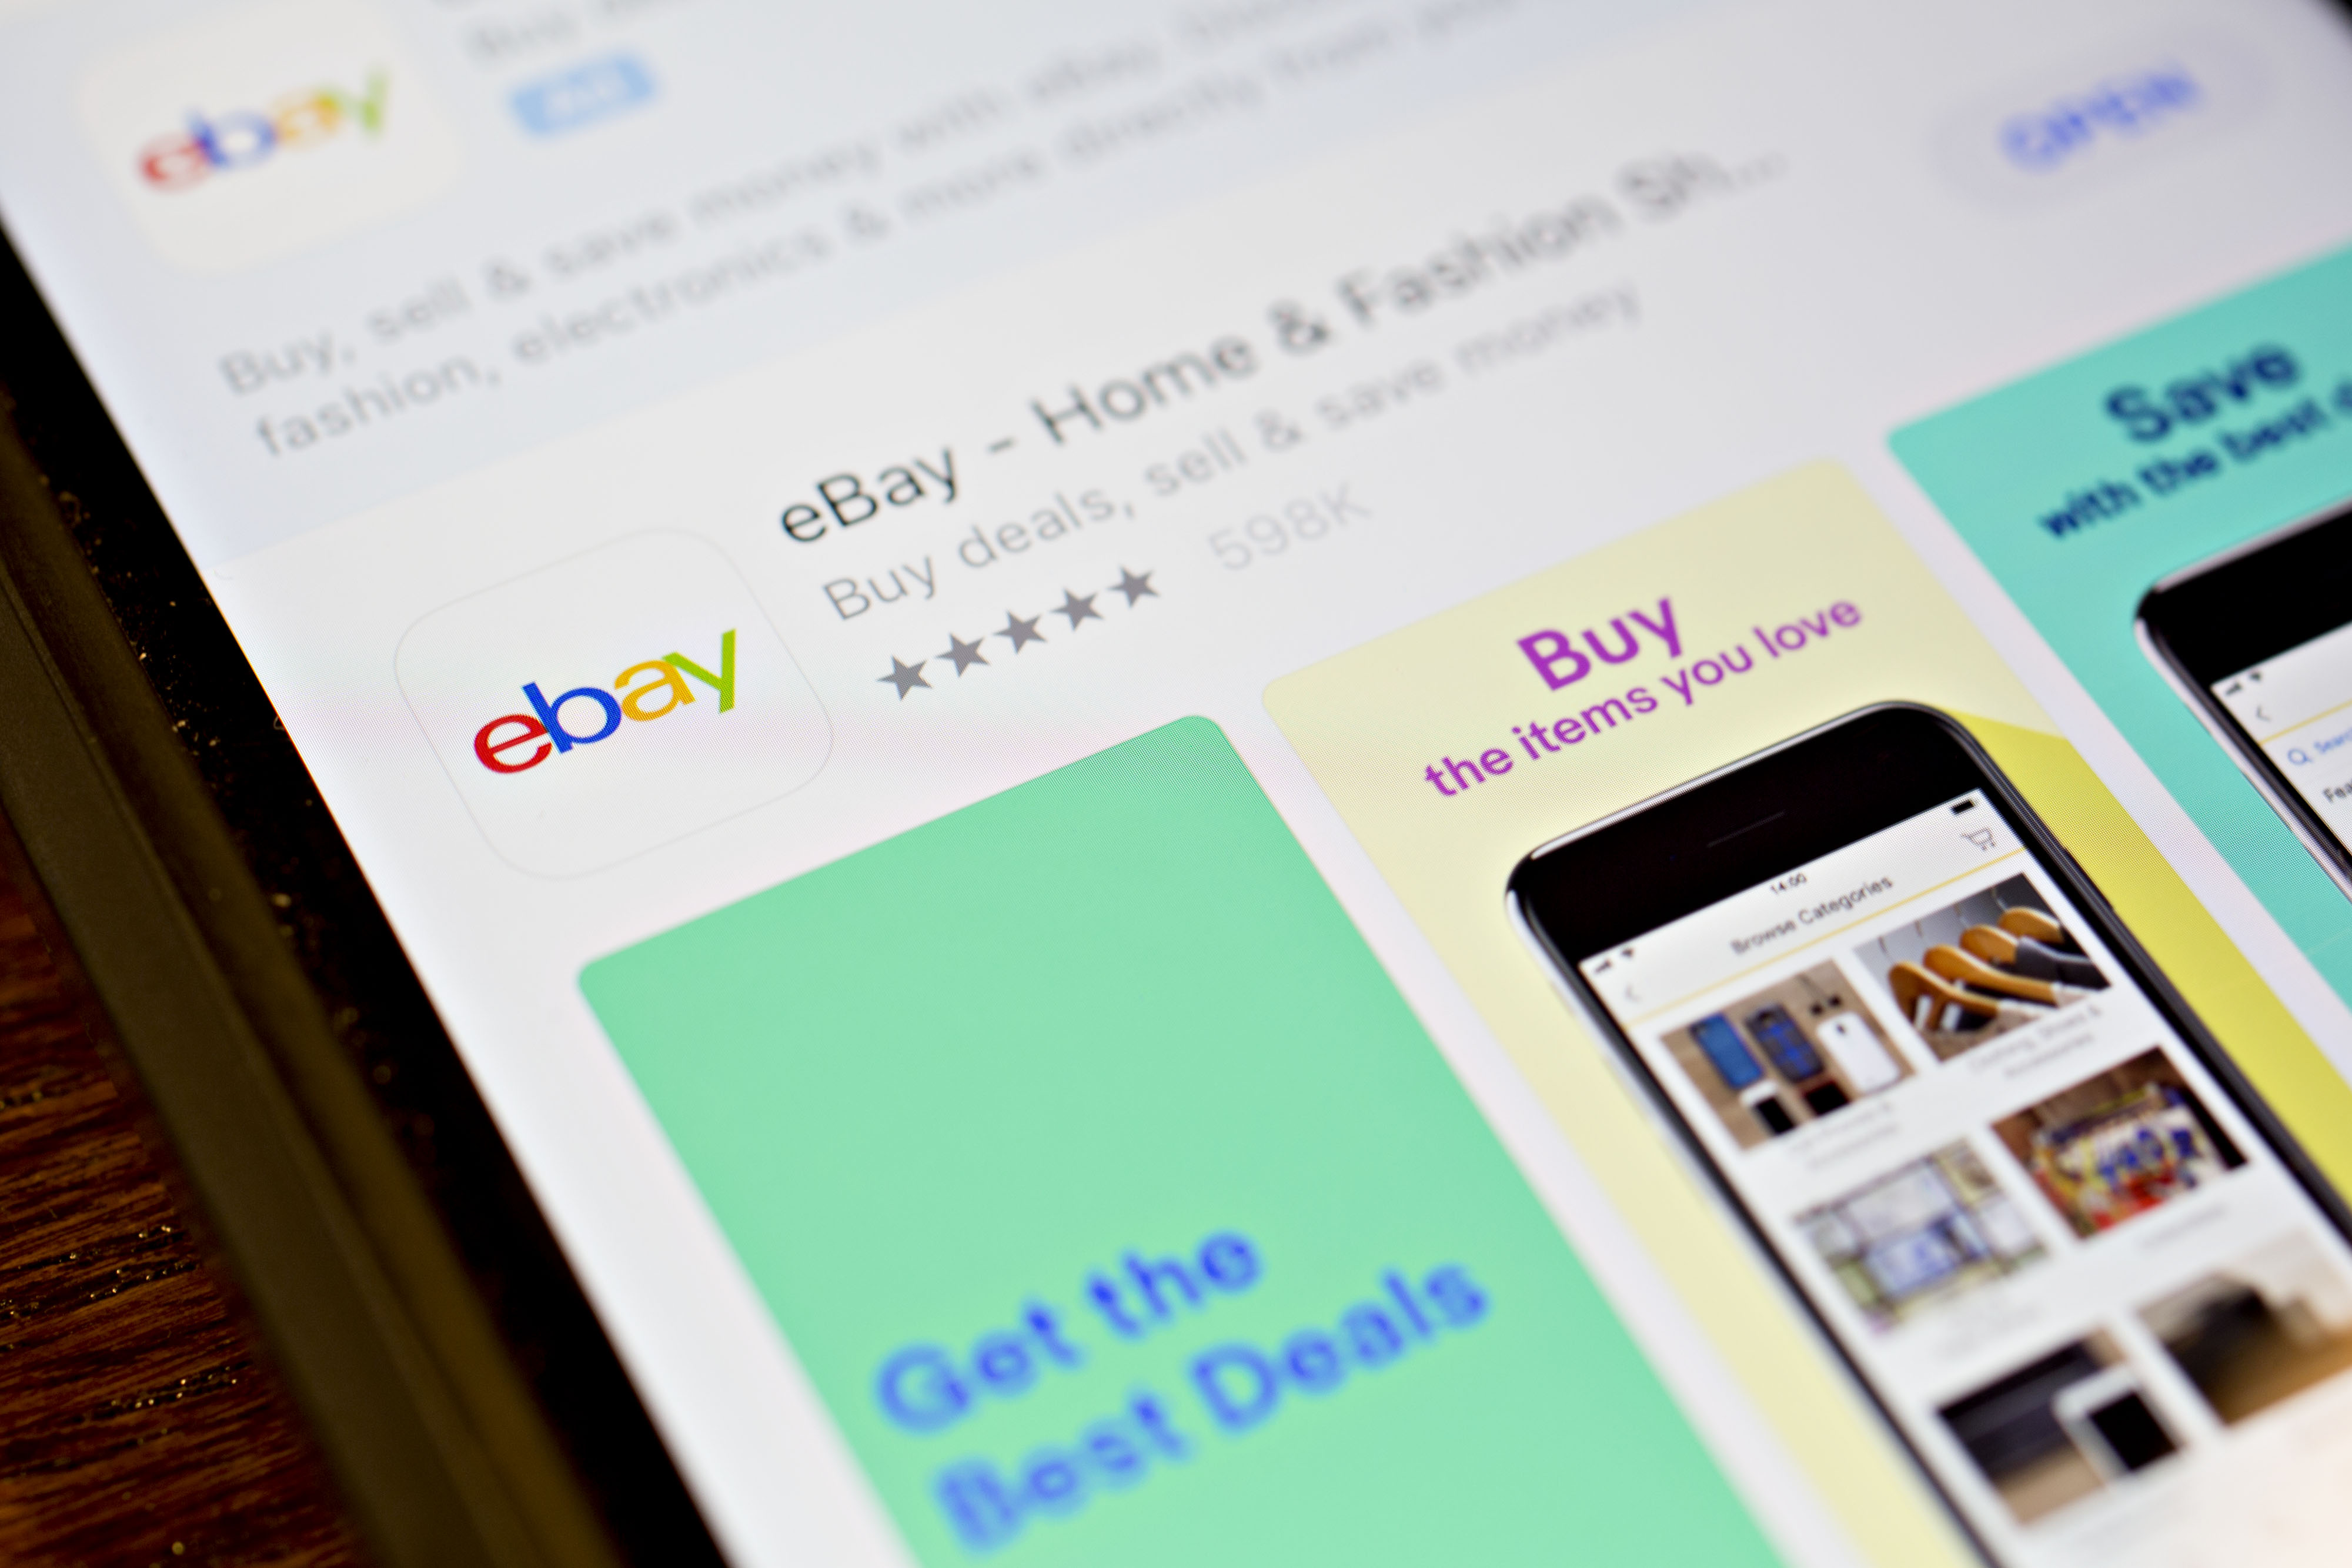 The eBay Inc. application is seen in the App Store on an Apple Inc. iPhone